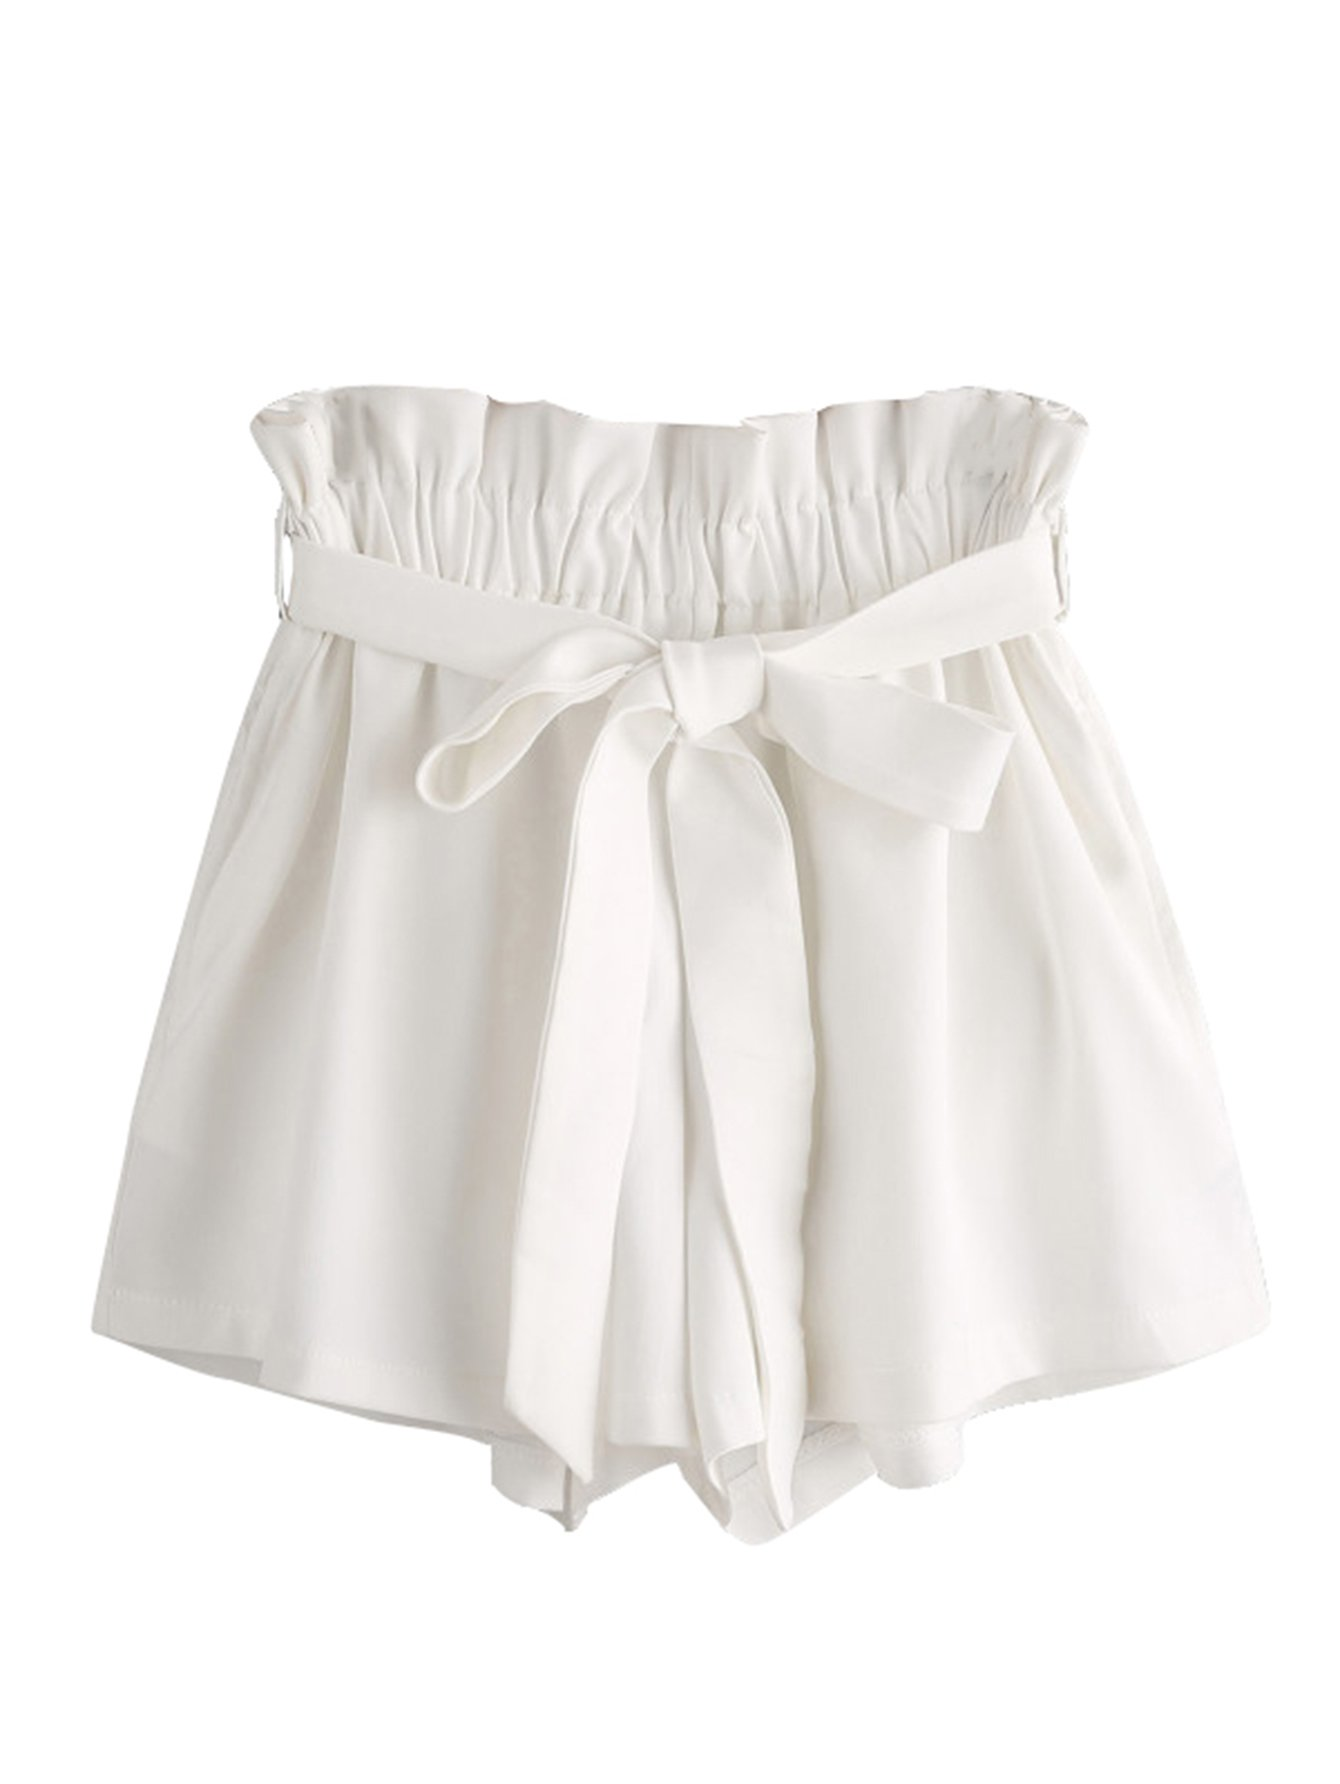 MakeMeChic Women's High Waist Casual Frill Loose Self-Tie Shorts White One Size